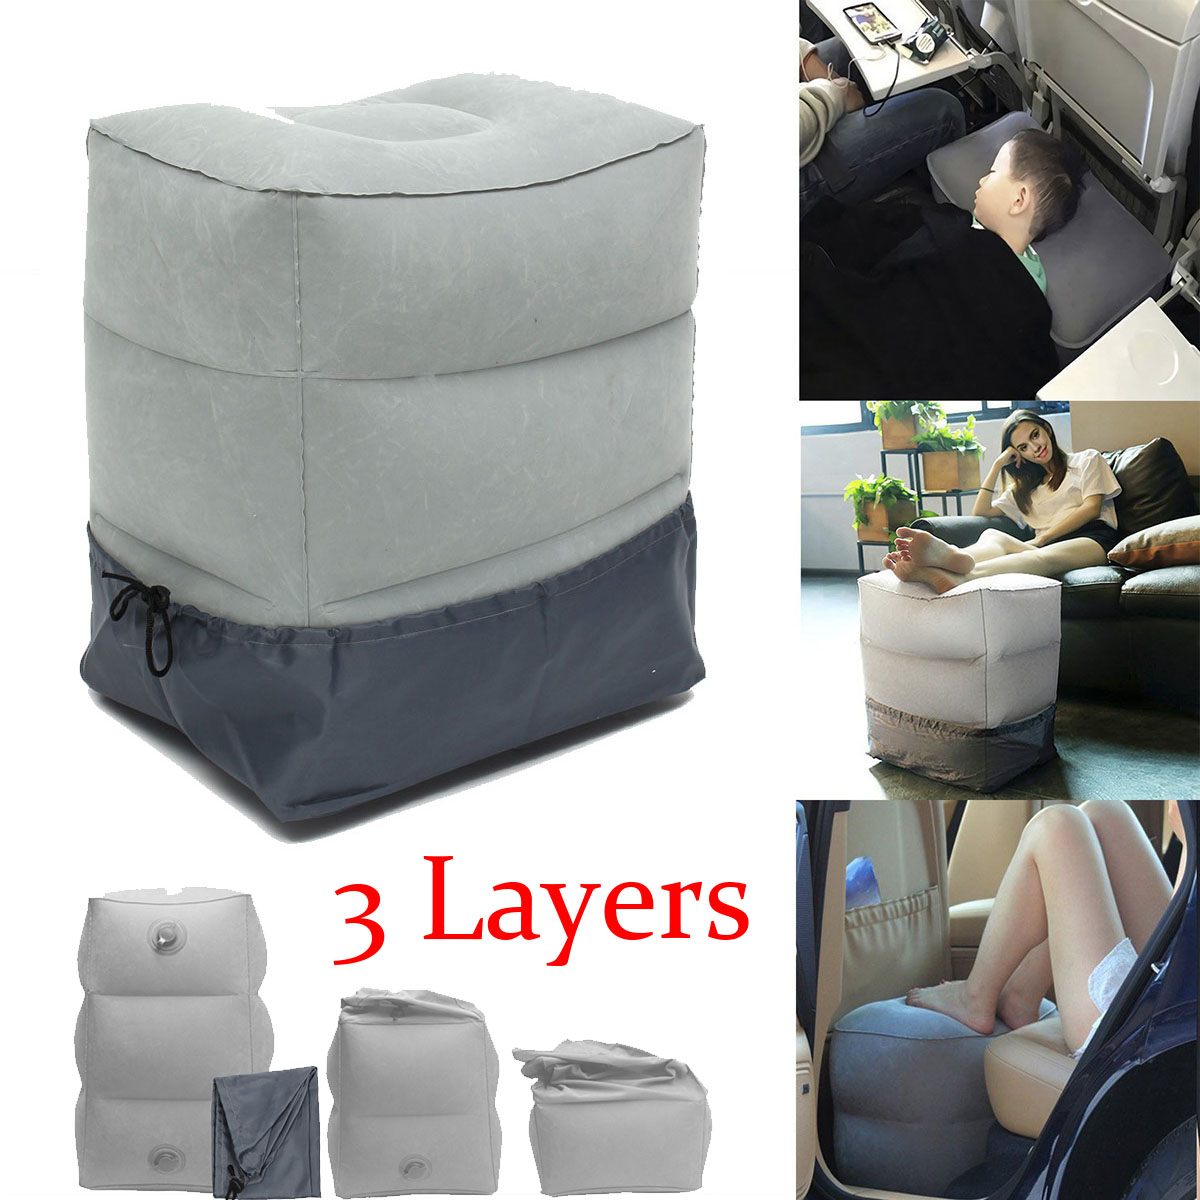 Inflatable Travel Footrest Pillow Pad Case Portable Plane Train Car Kids Bed Feet Rest Body Foot Rest Cusion Pillows